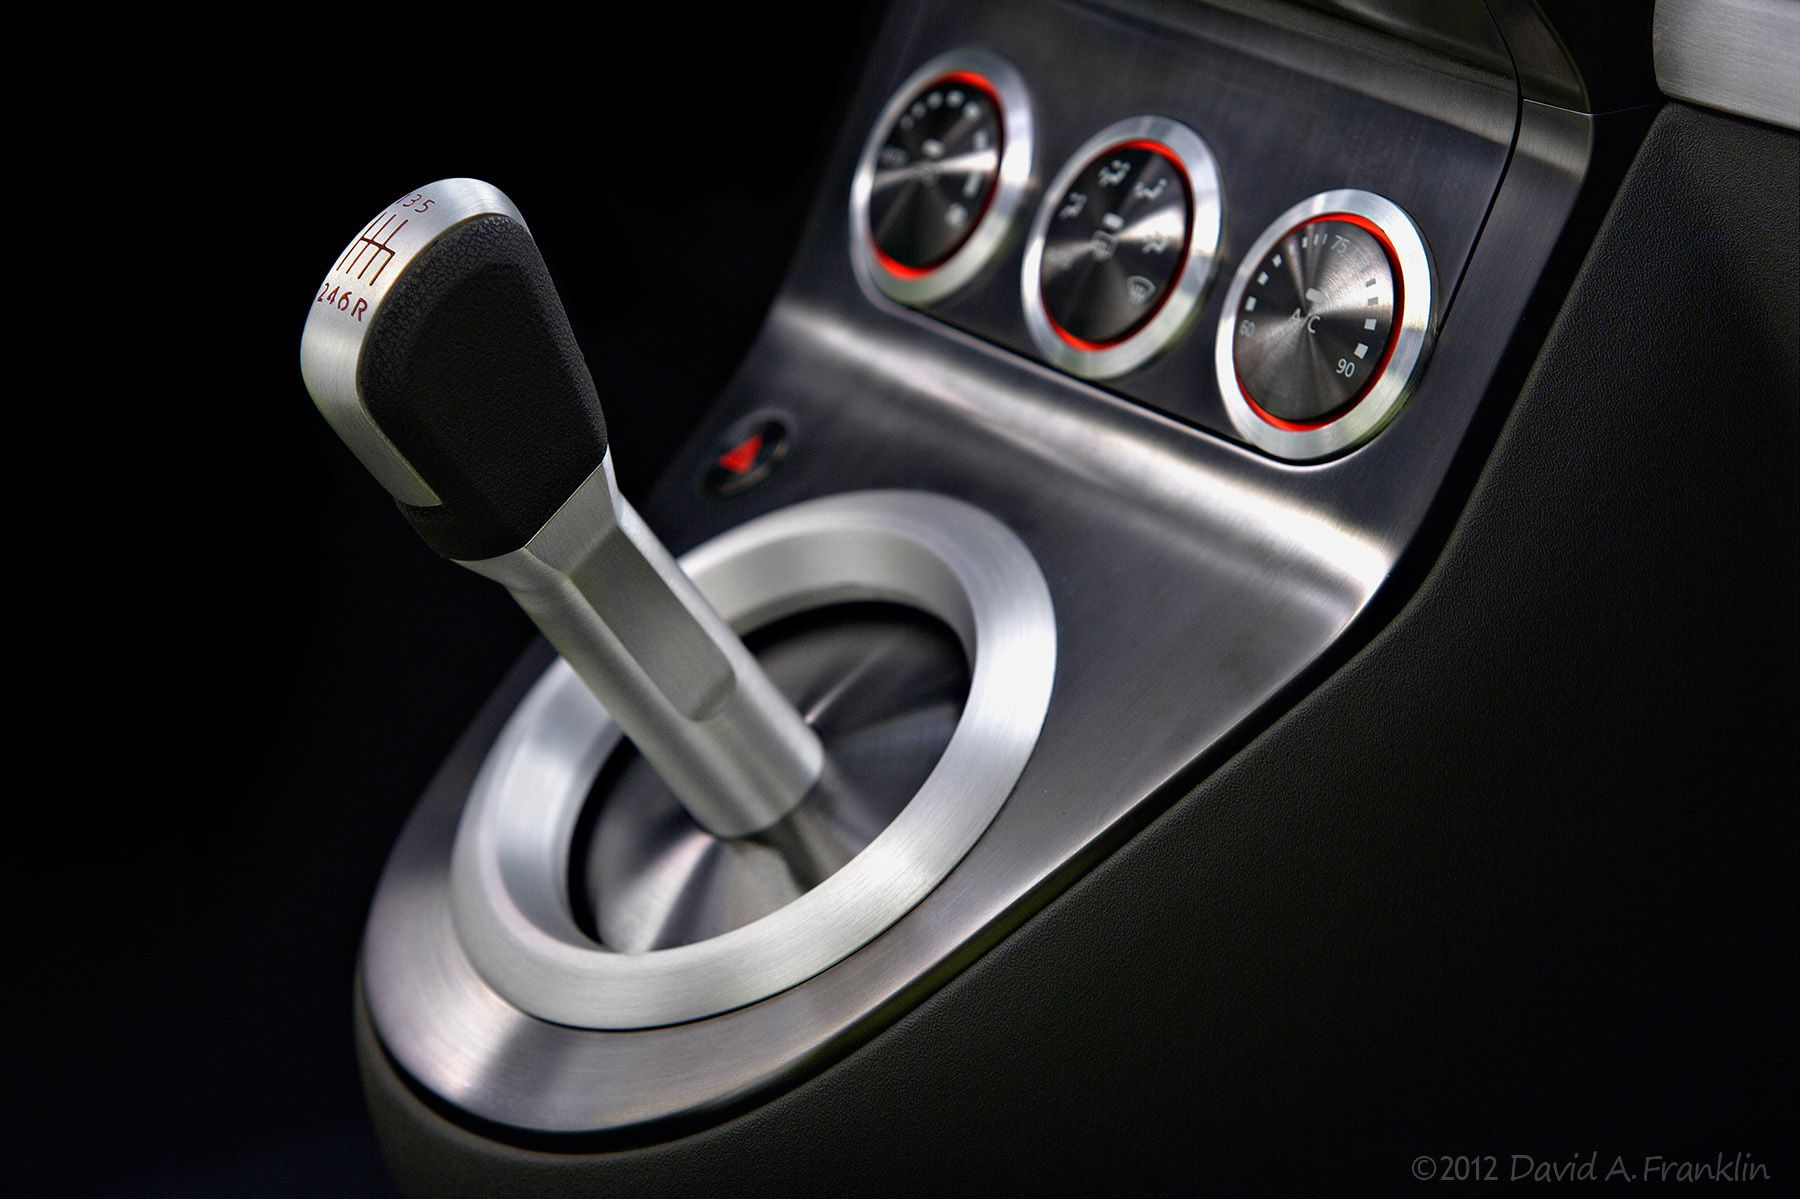 NissanAzeal_ShowCar_InteriorDetail_ShiftLever_Studio